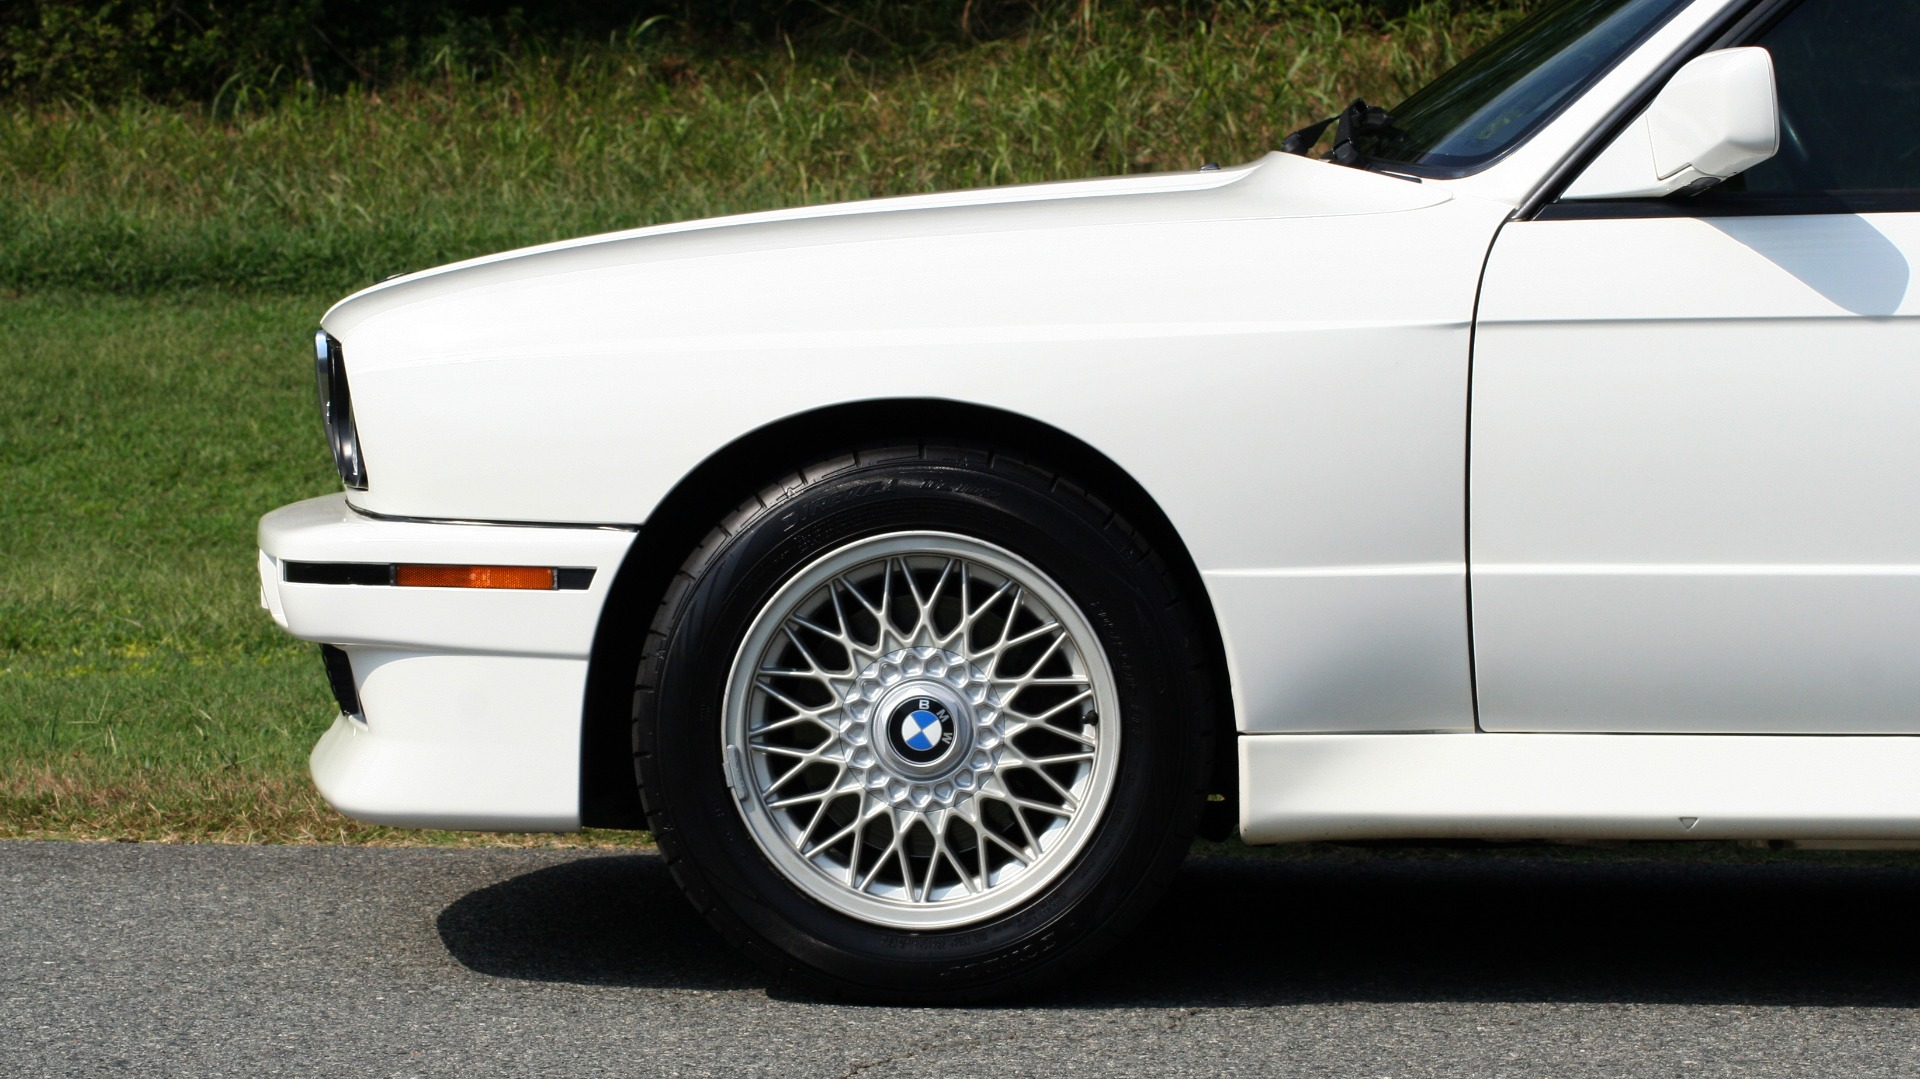 Used 1989 BMW M3 COUPE 2DR / 5-SPEED MAN / LOW MILES / SUPER CLEAN for sale Sold at Formula Imports in Charlotte NC 28227 5